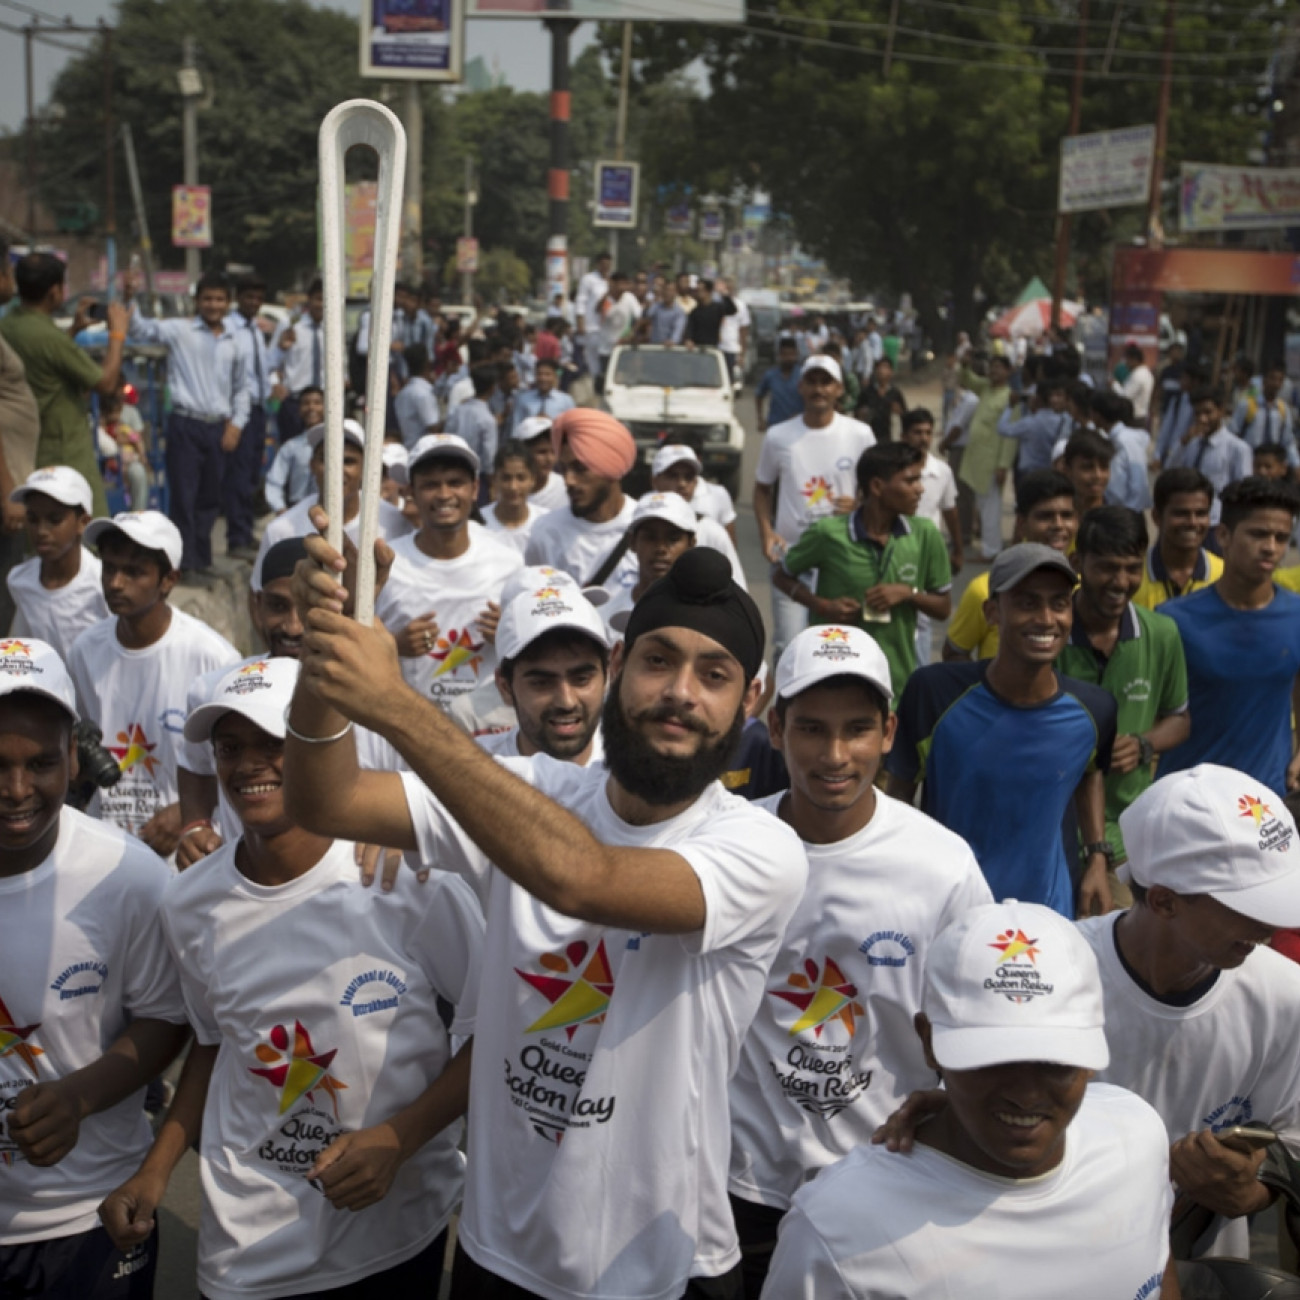 Batonbearers taking part in the Baton Relay through the streets of Rudrapur